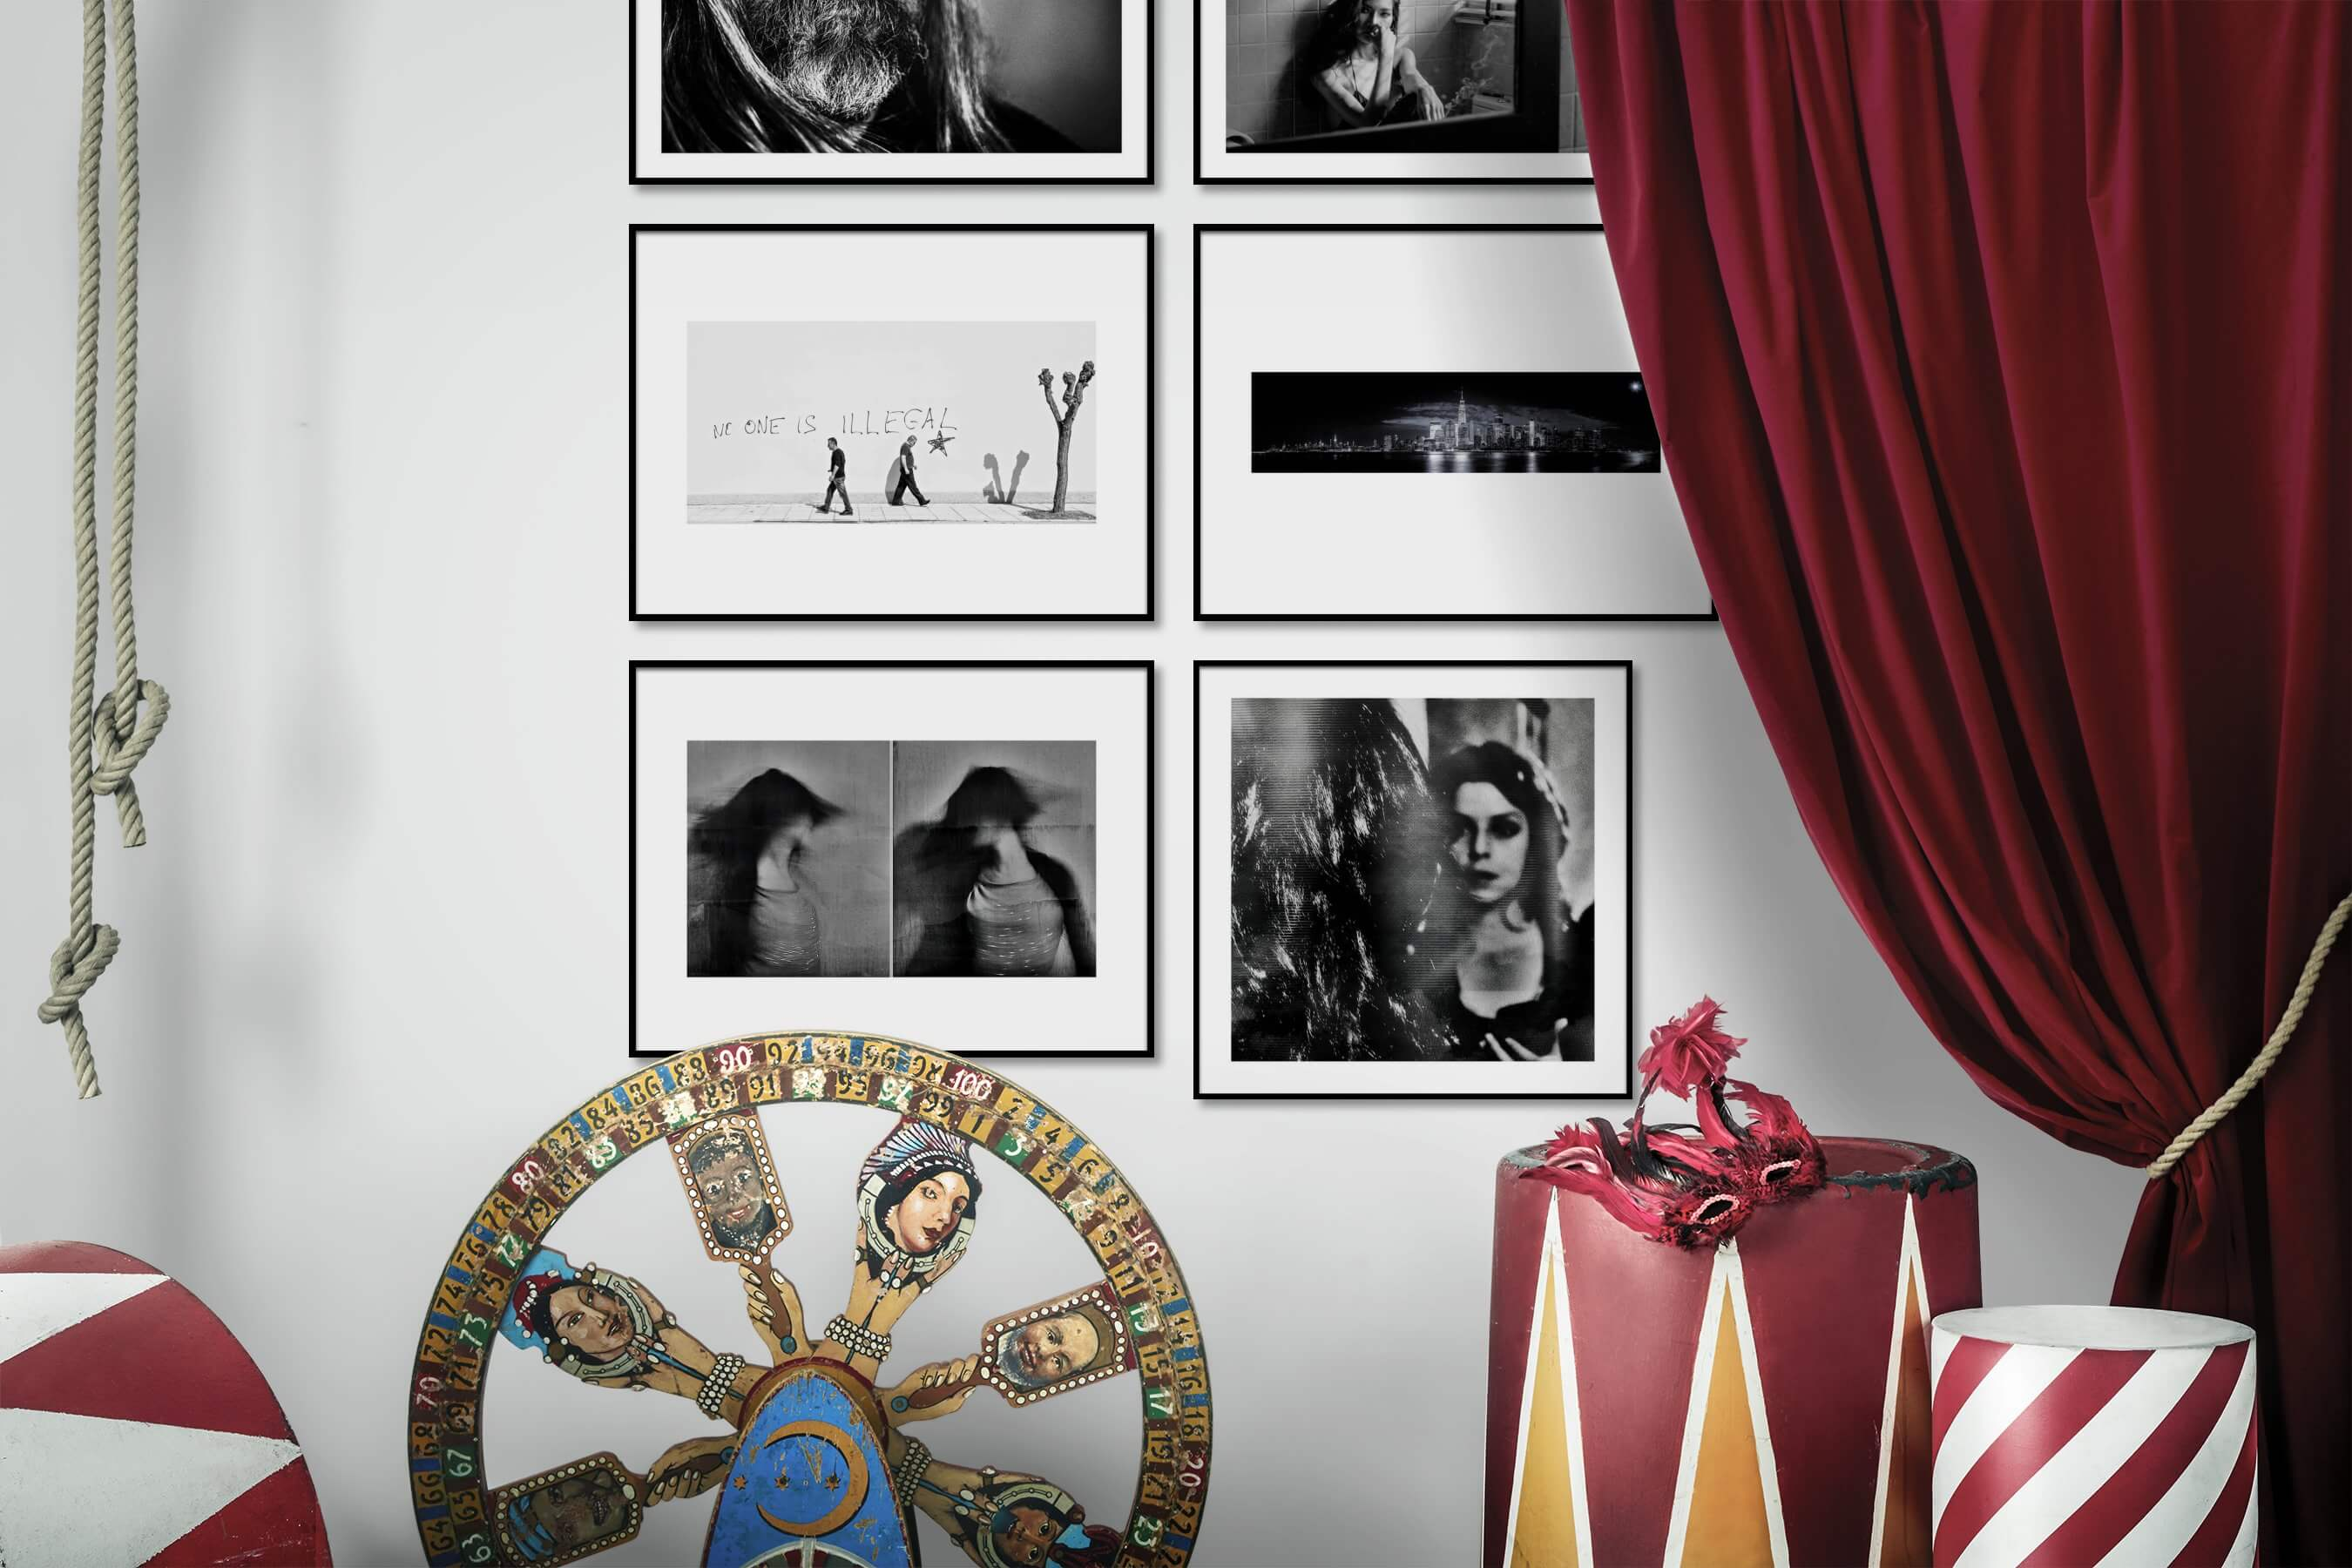 Gallery wall idea with six framed pictures arranged on a wall depicting Artsy, Black & White, Fashion & Beauty, For the Minimalist, City Life, and Americana